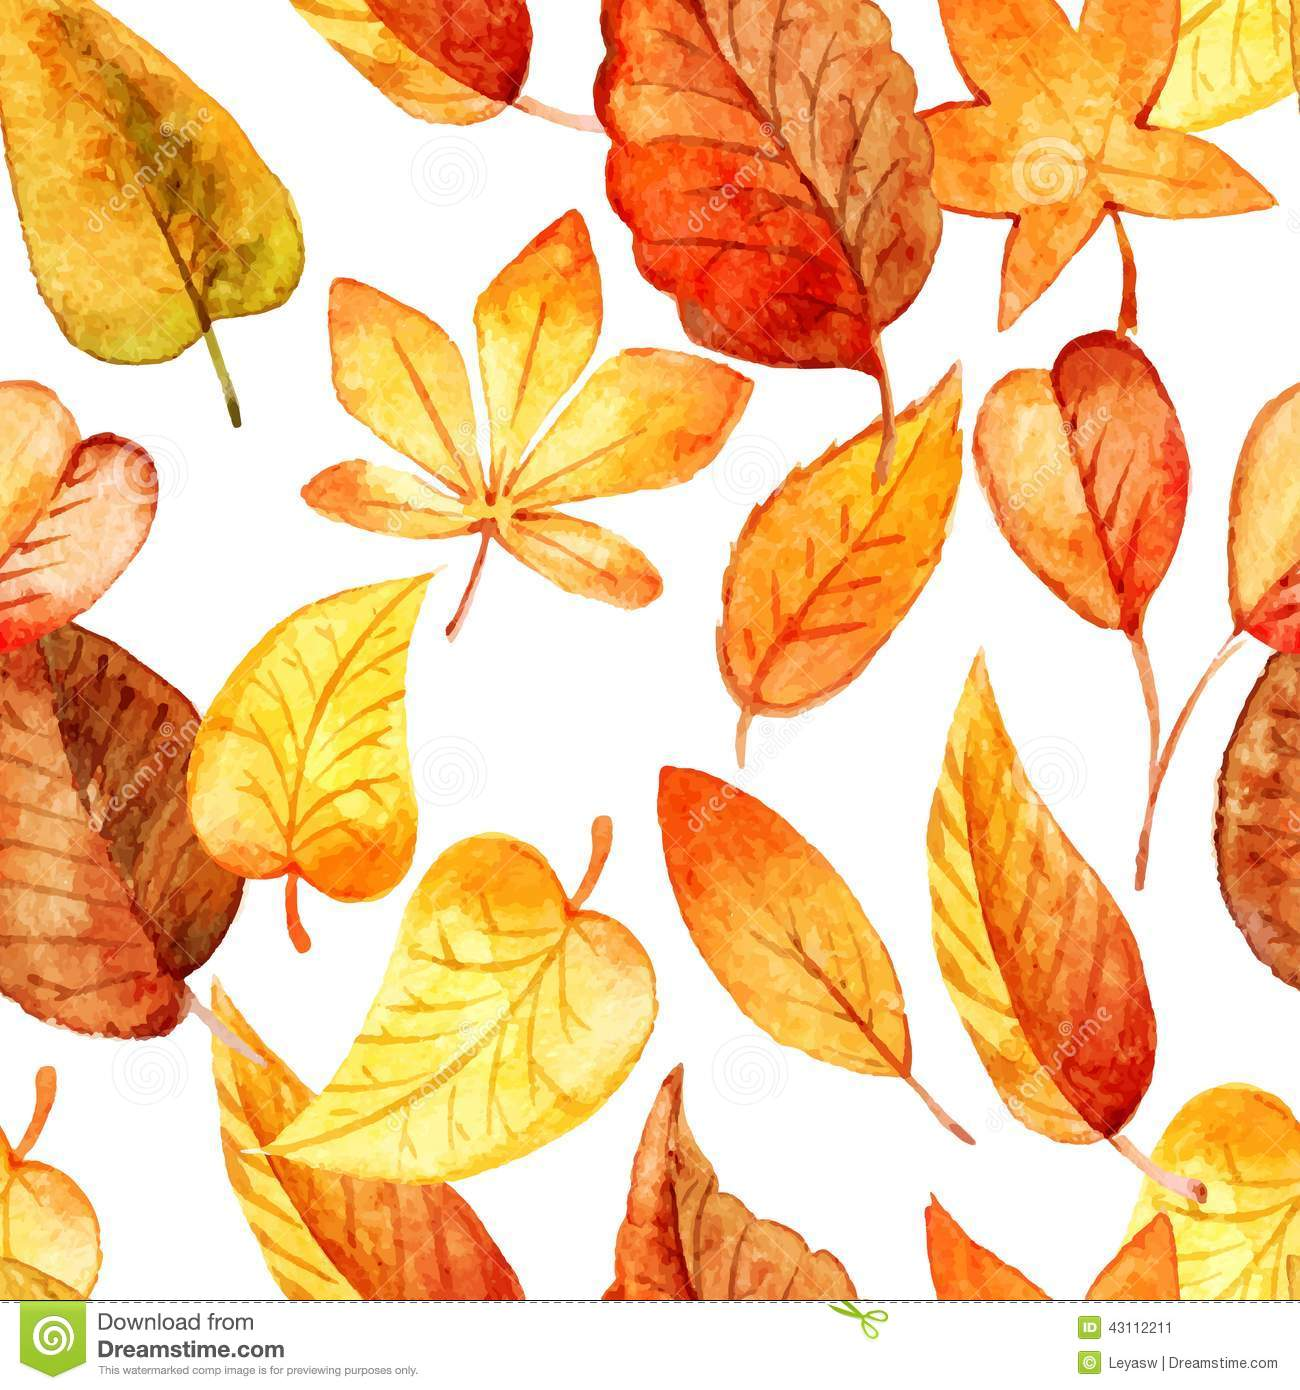 Fall Leaf Watercolor Patterns - Patterns Kid